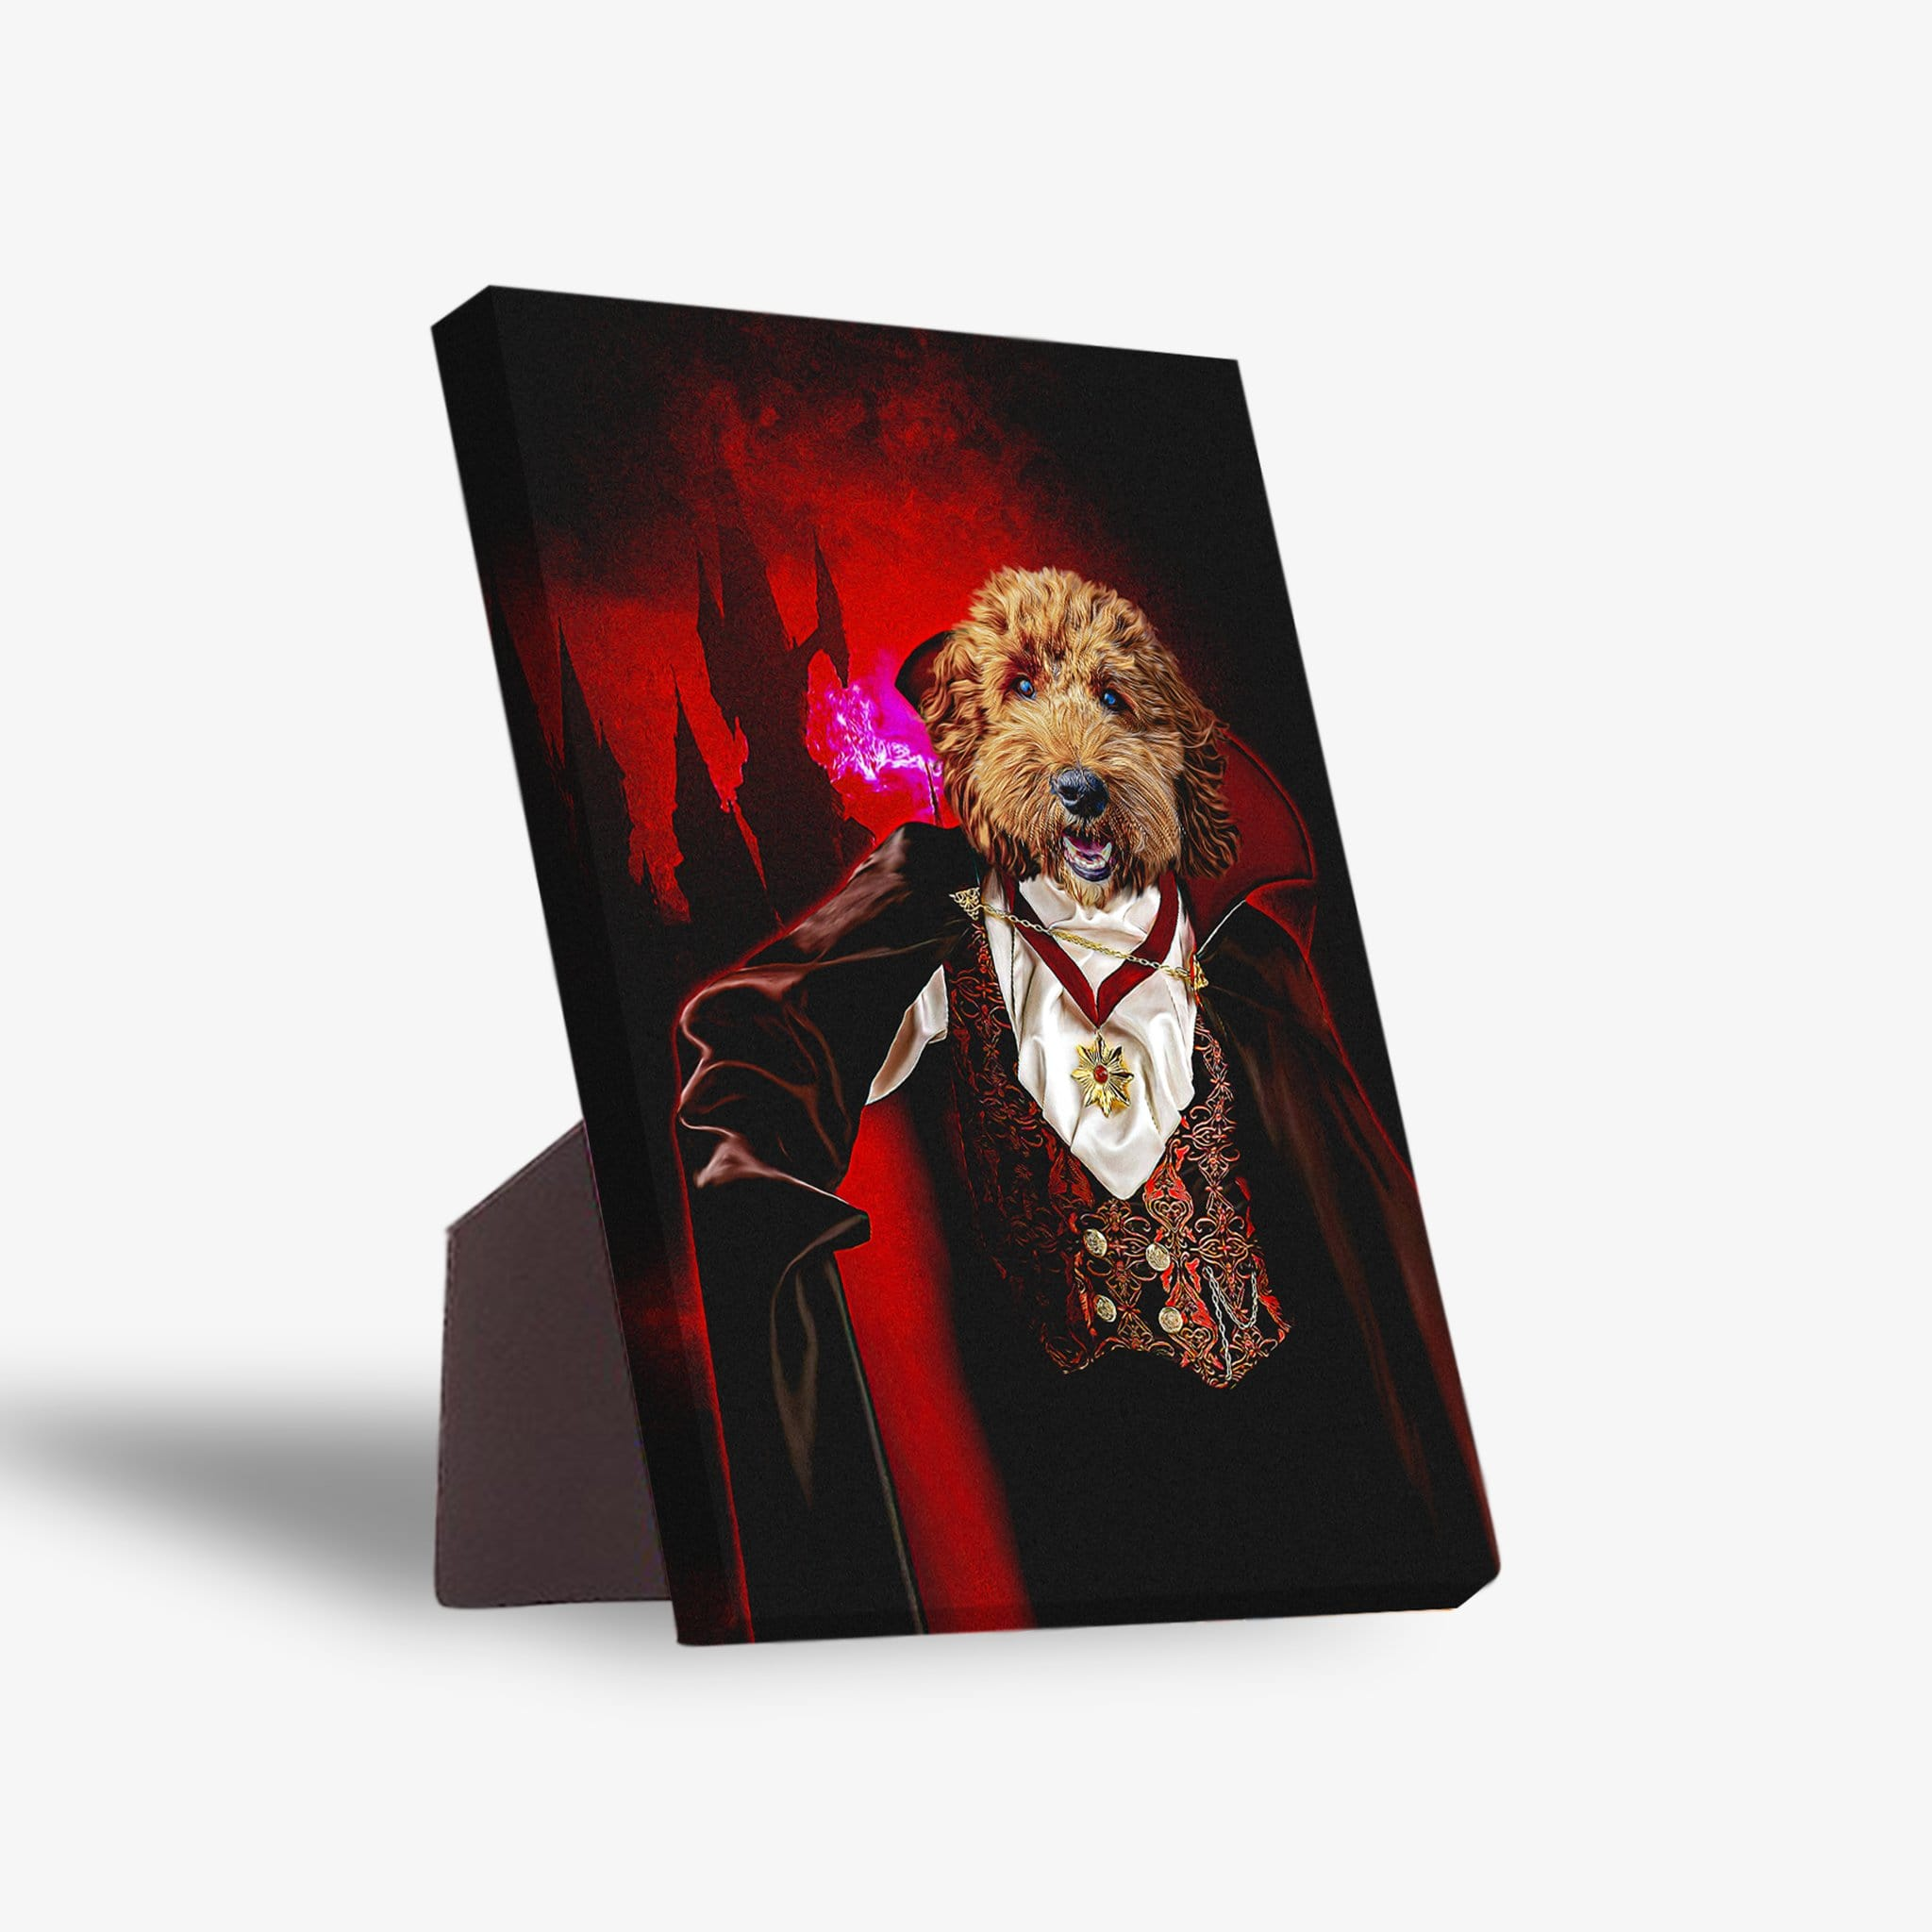 'The Vampire' Personalized Pet Standing Canvas